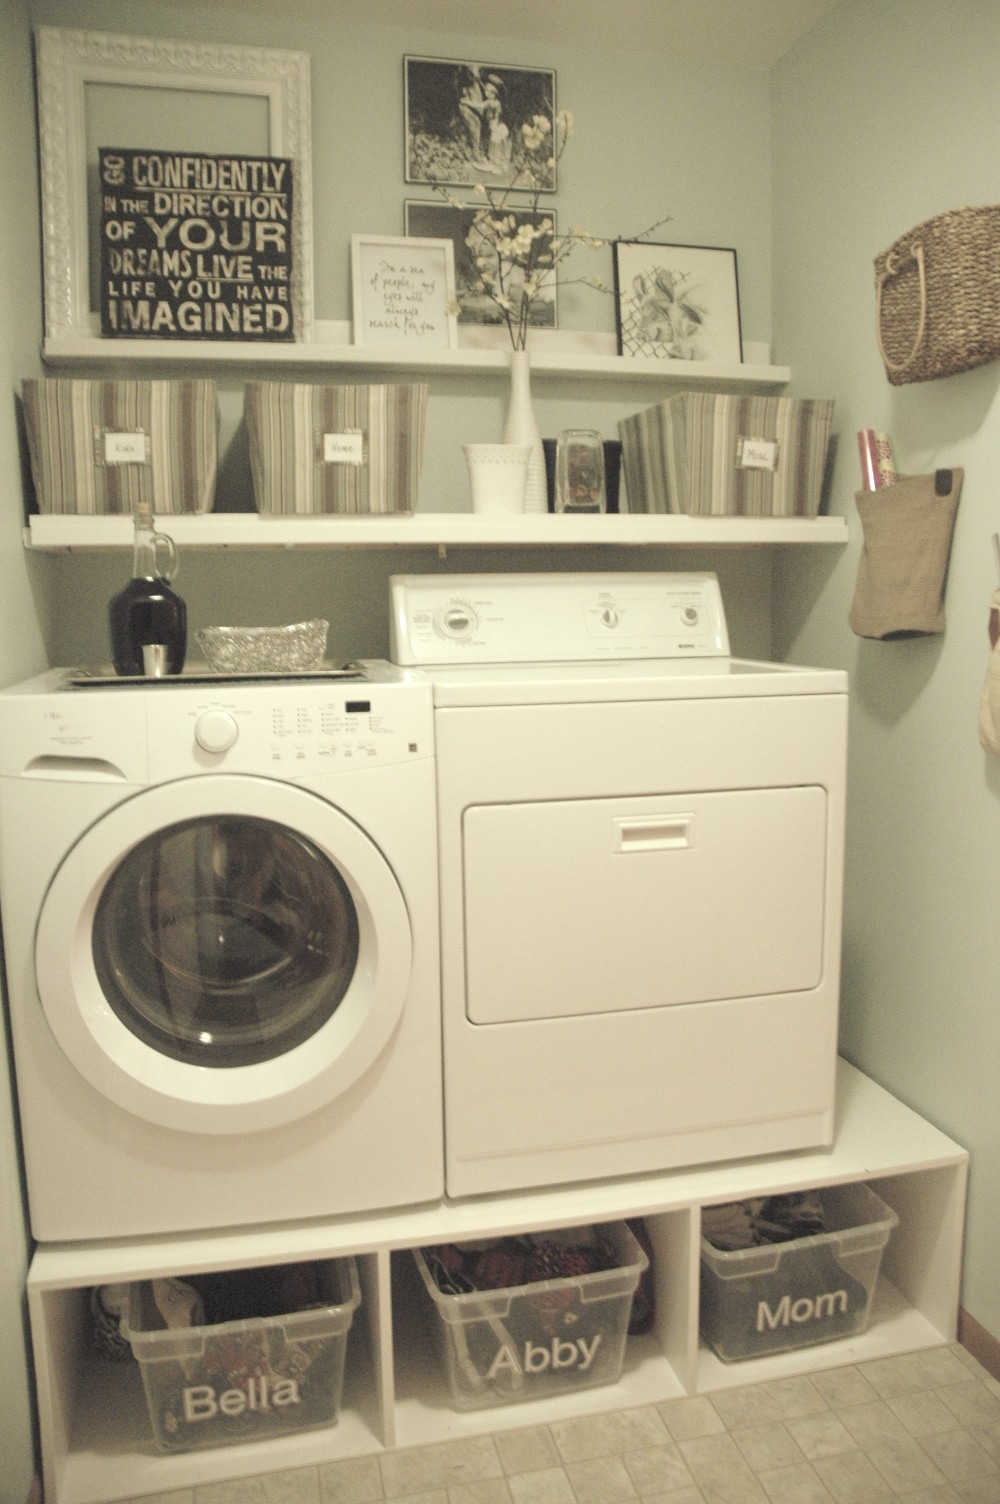 This laundry room makeover makes me so happy! This blogger made her own pedestal to create more storage under the washer and dryer. I must do this in my laundry room! Found on Tremendously Thrifty.